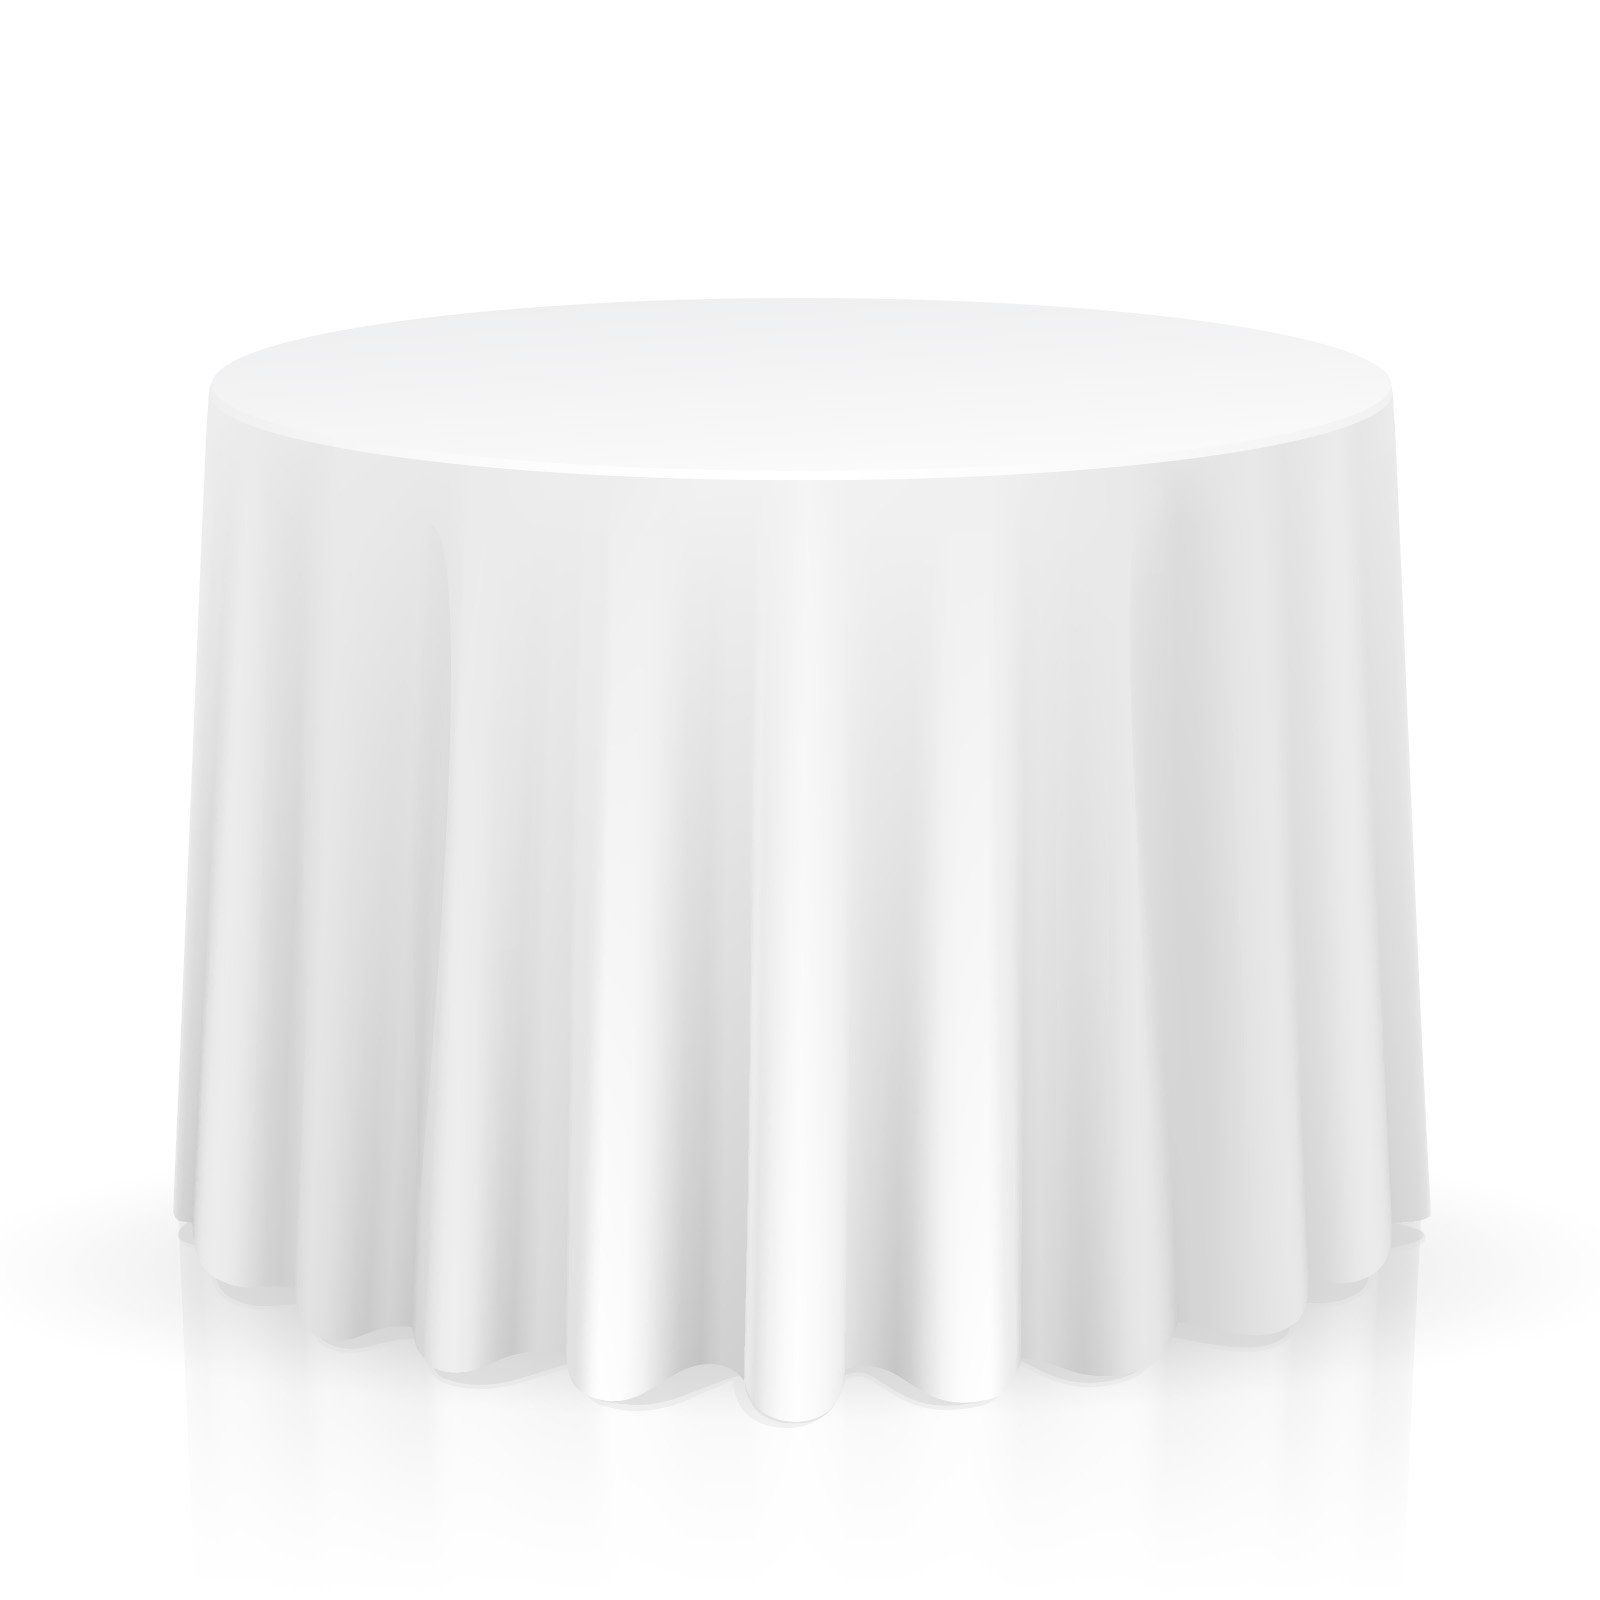 Lann's Linens - 5 Premium 120'' Round Tablecloths for Wedding/Banquet/Restaurant - Polyester Fabric Table Cloths - White by Lann's Linens